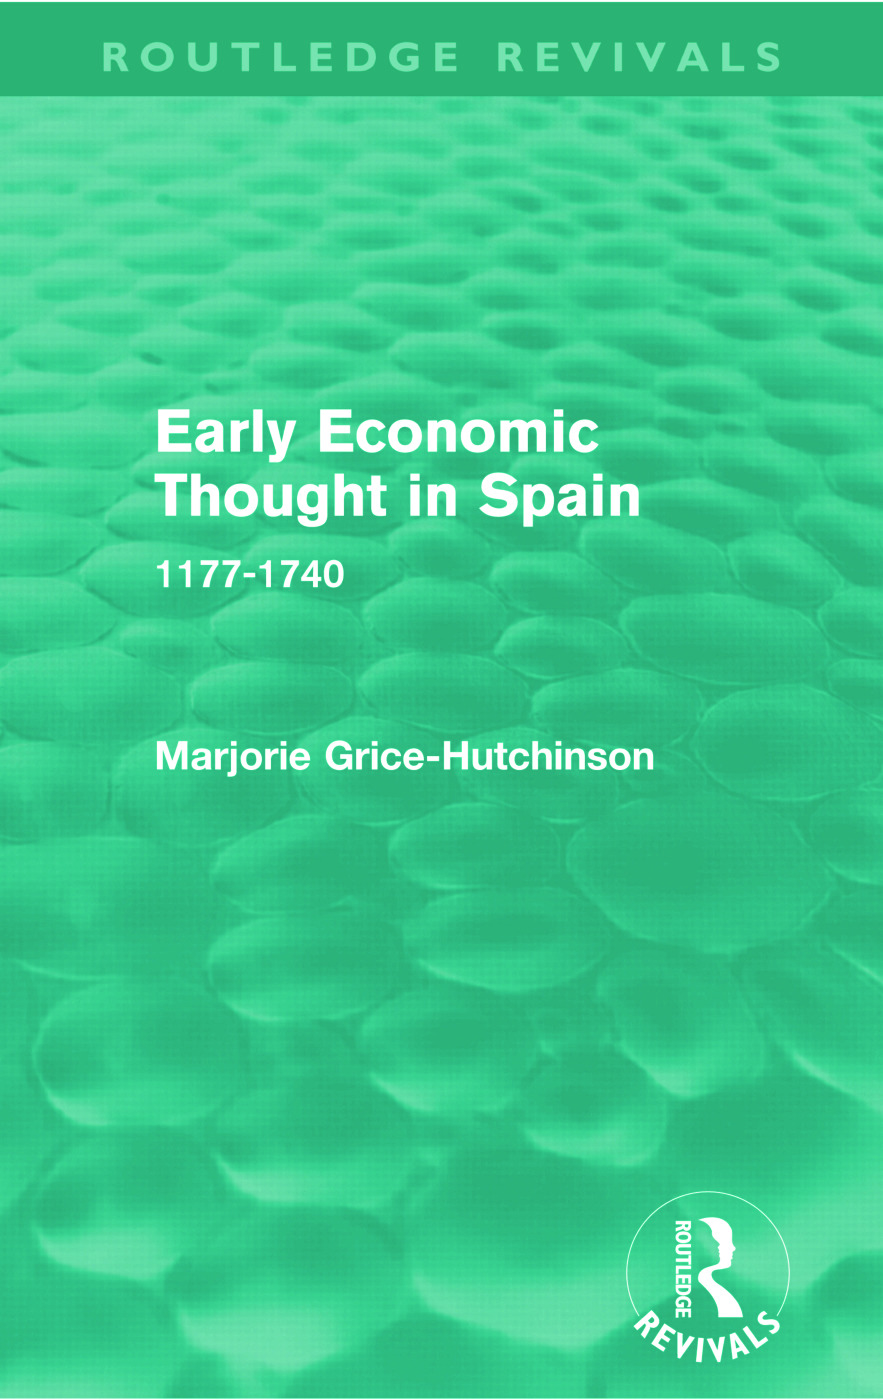 Early Economic Thought in Spain, 1177-1740 (Routledge Revivals) (Paperback) book cover